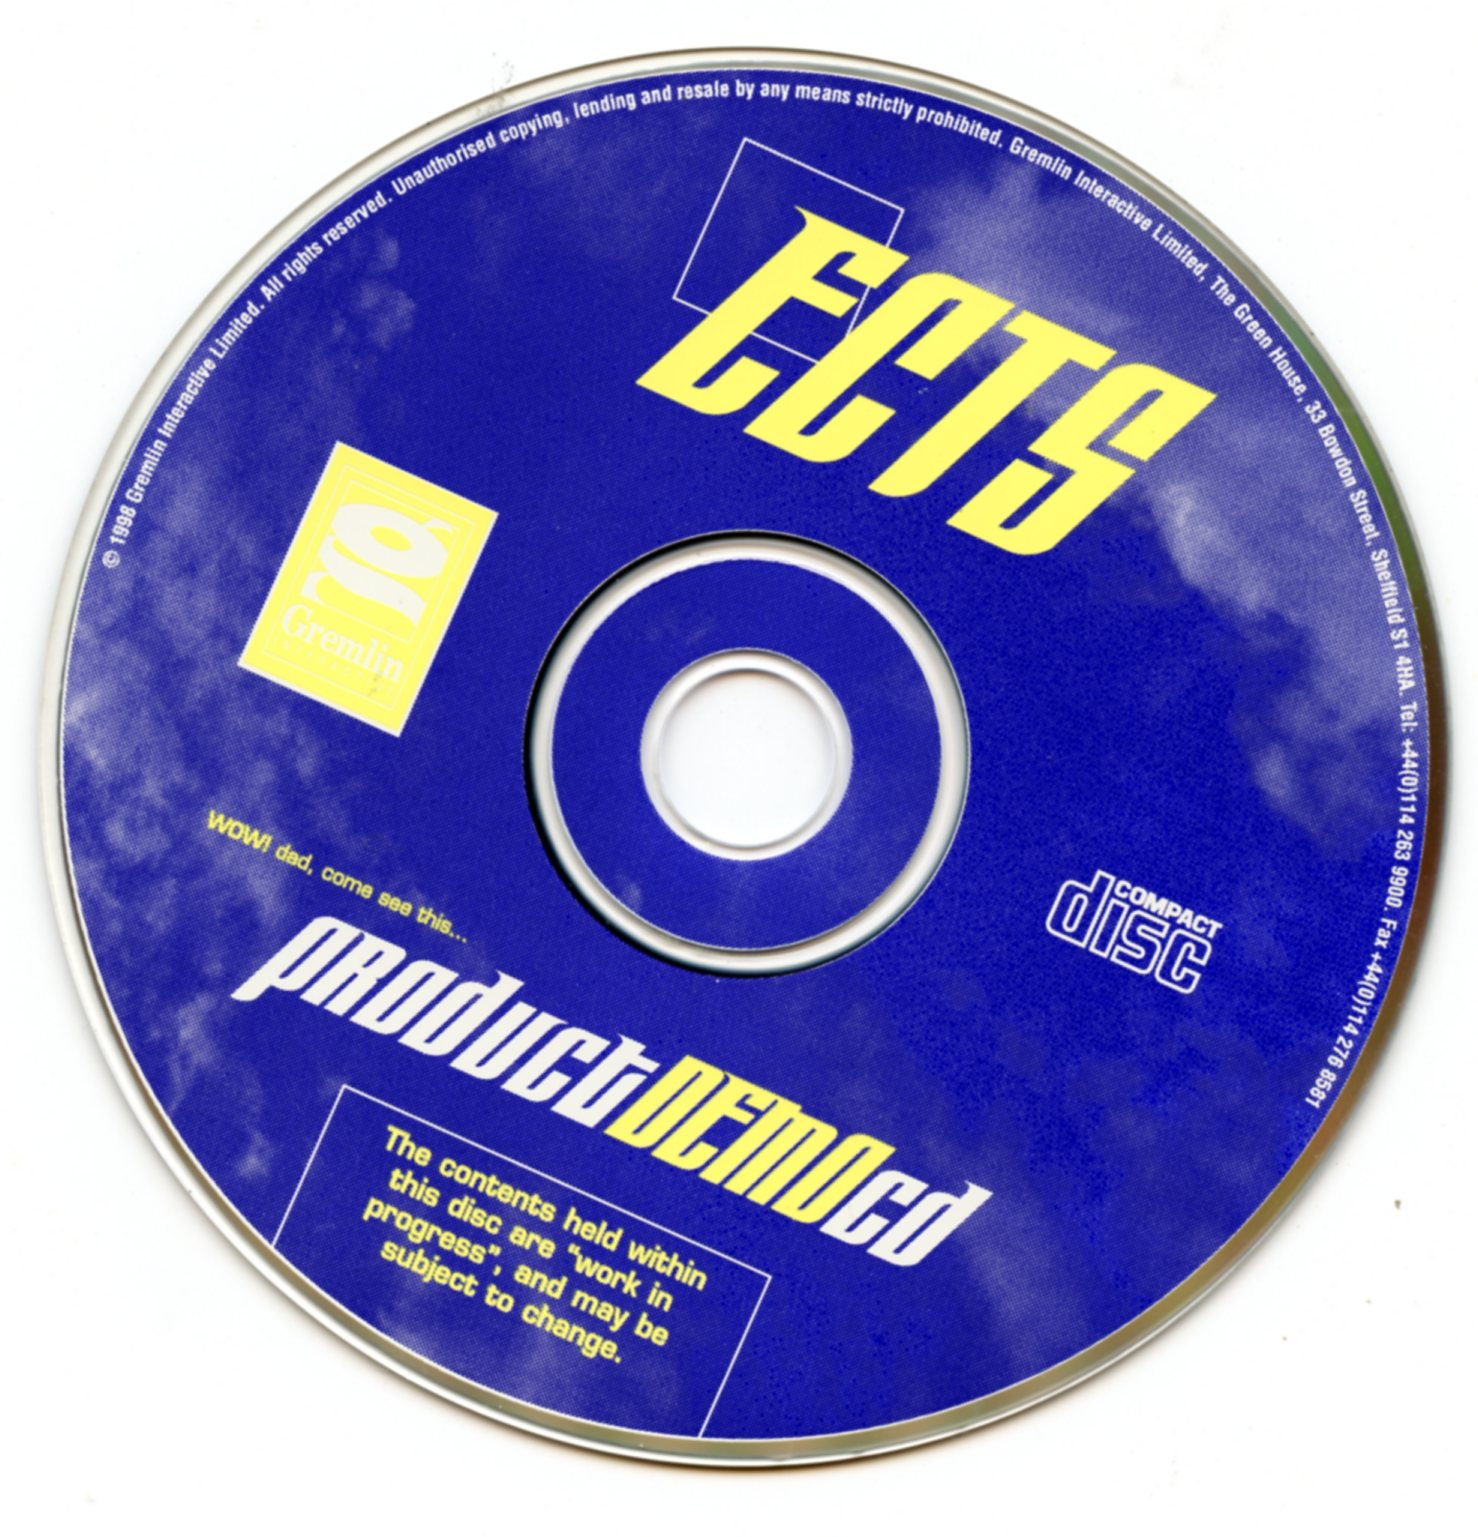 ECTS Product Demo CD